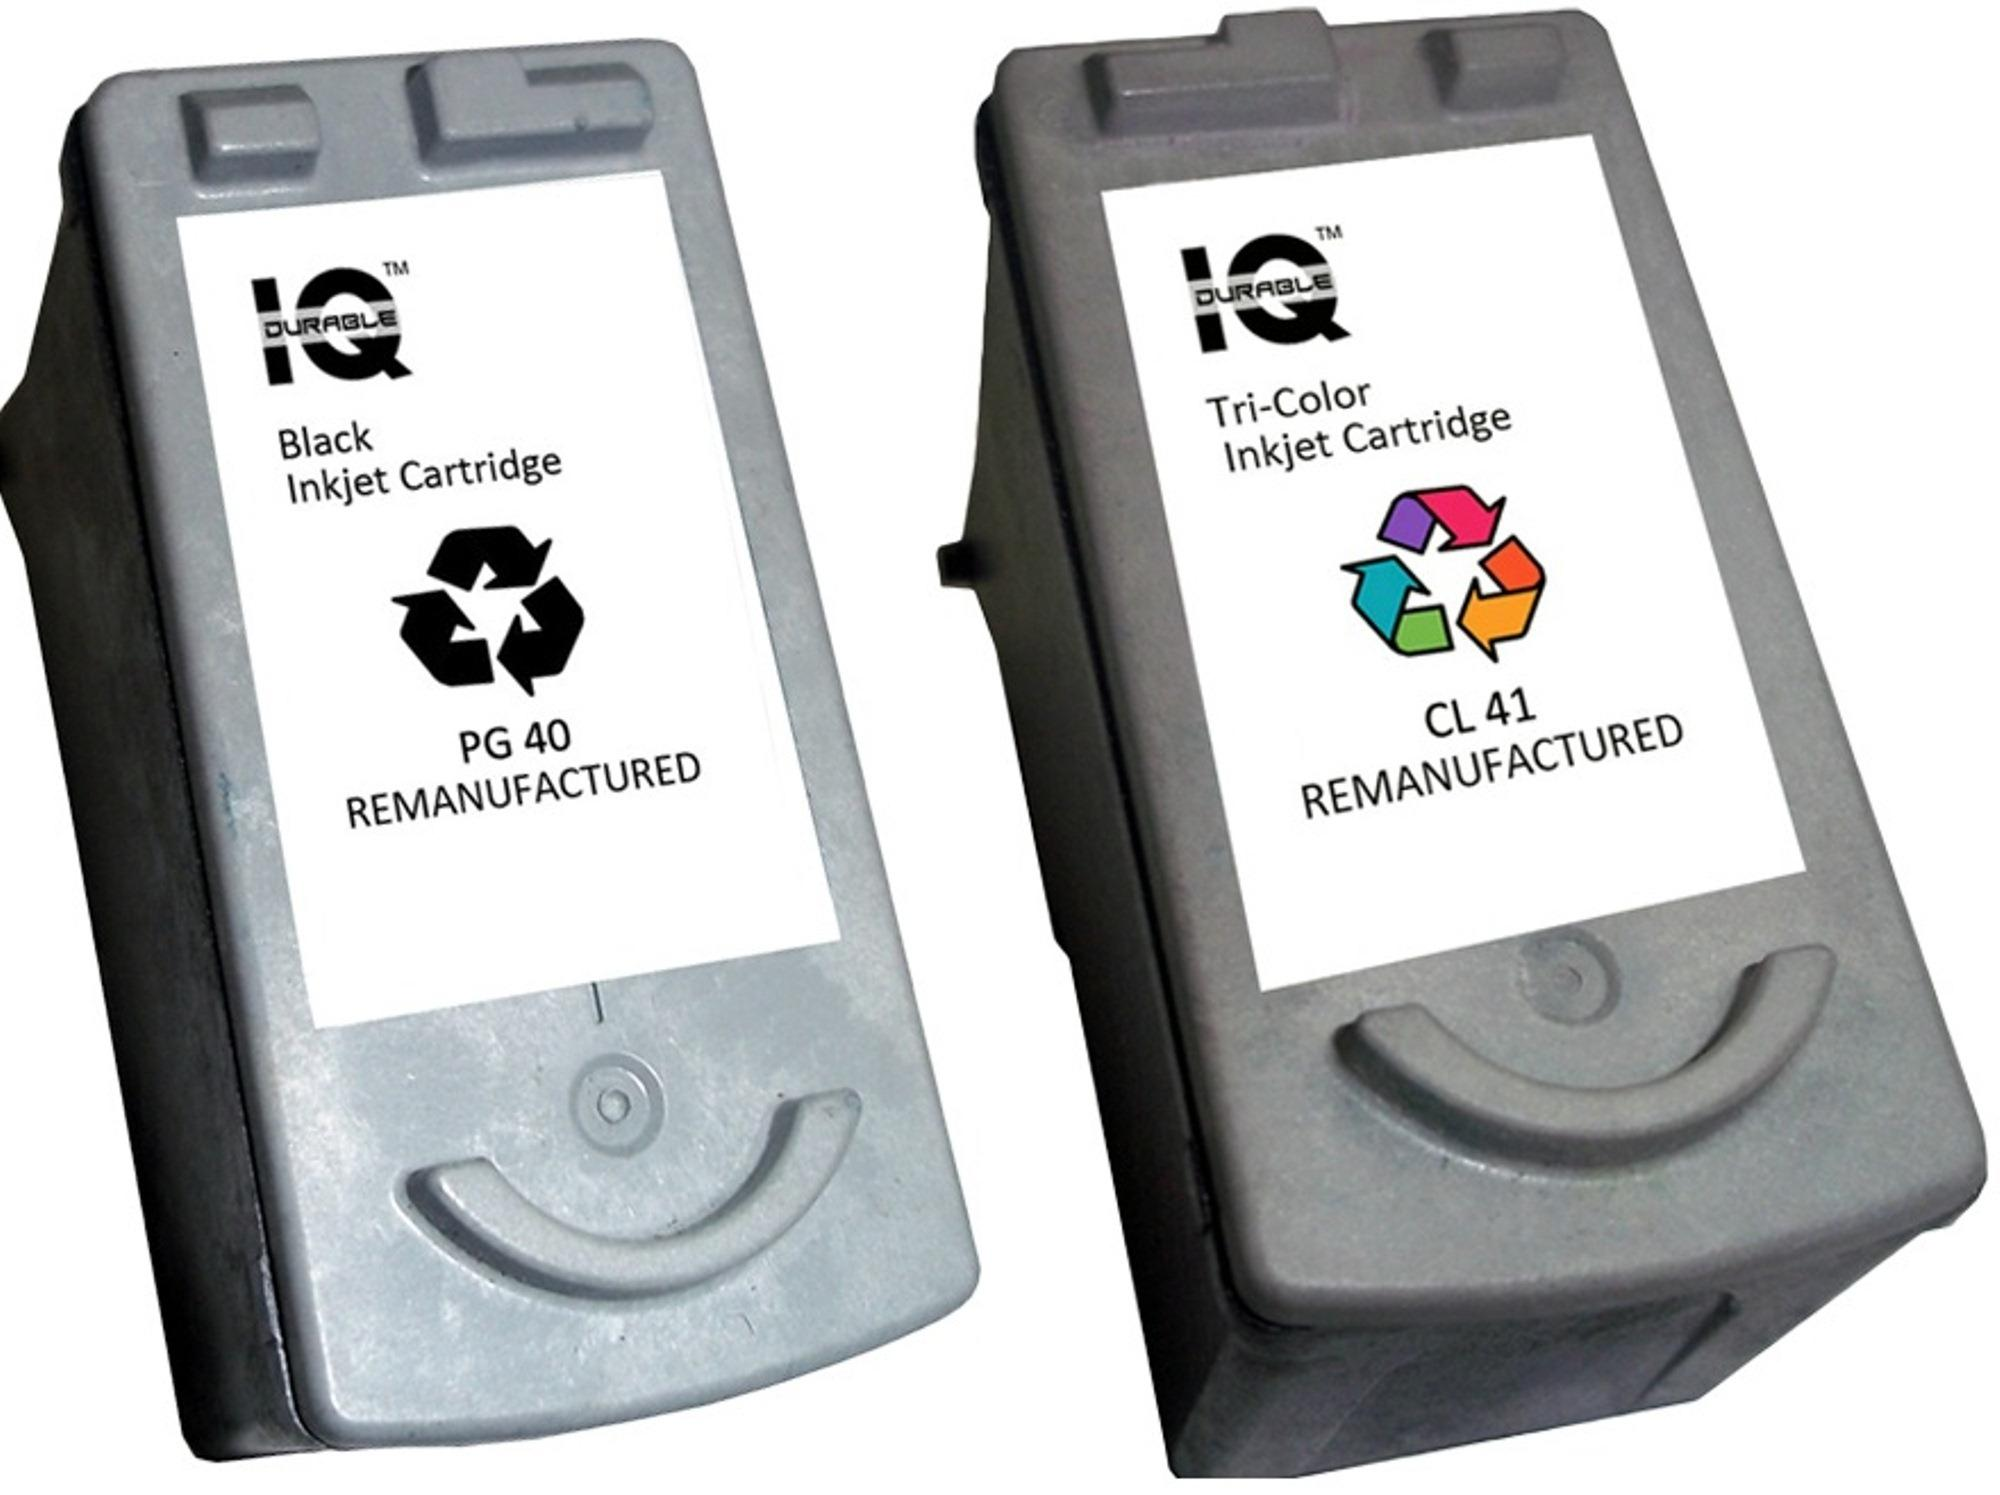 Remanufactured Canon Pg-40 (black) With Canon Cl-41 (tri-Color) Ink Cartridge By Iq Durable